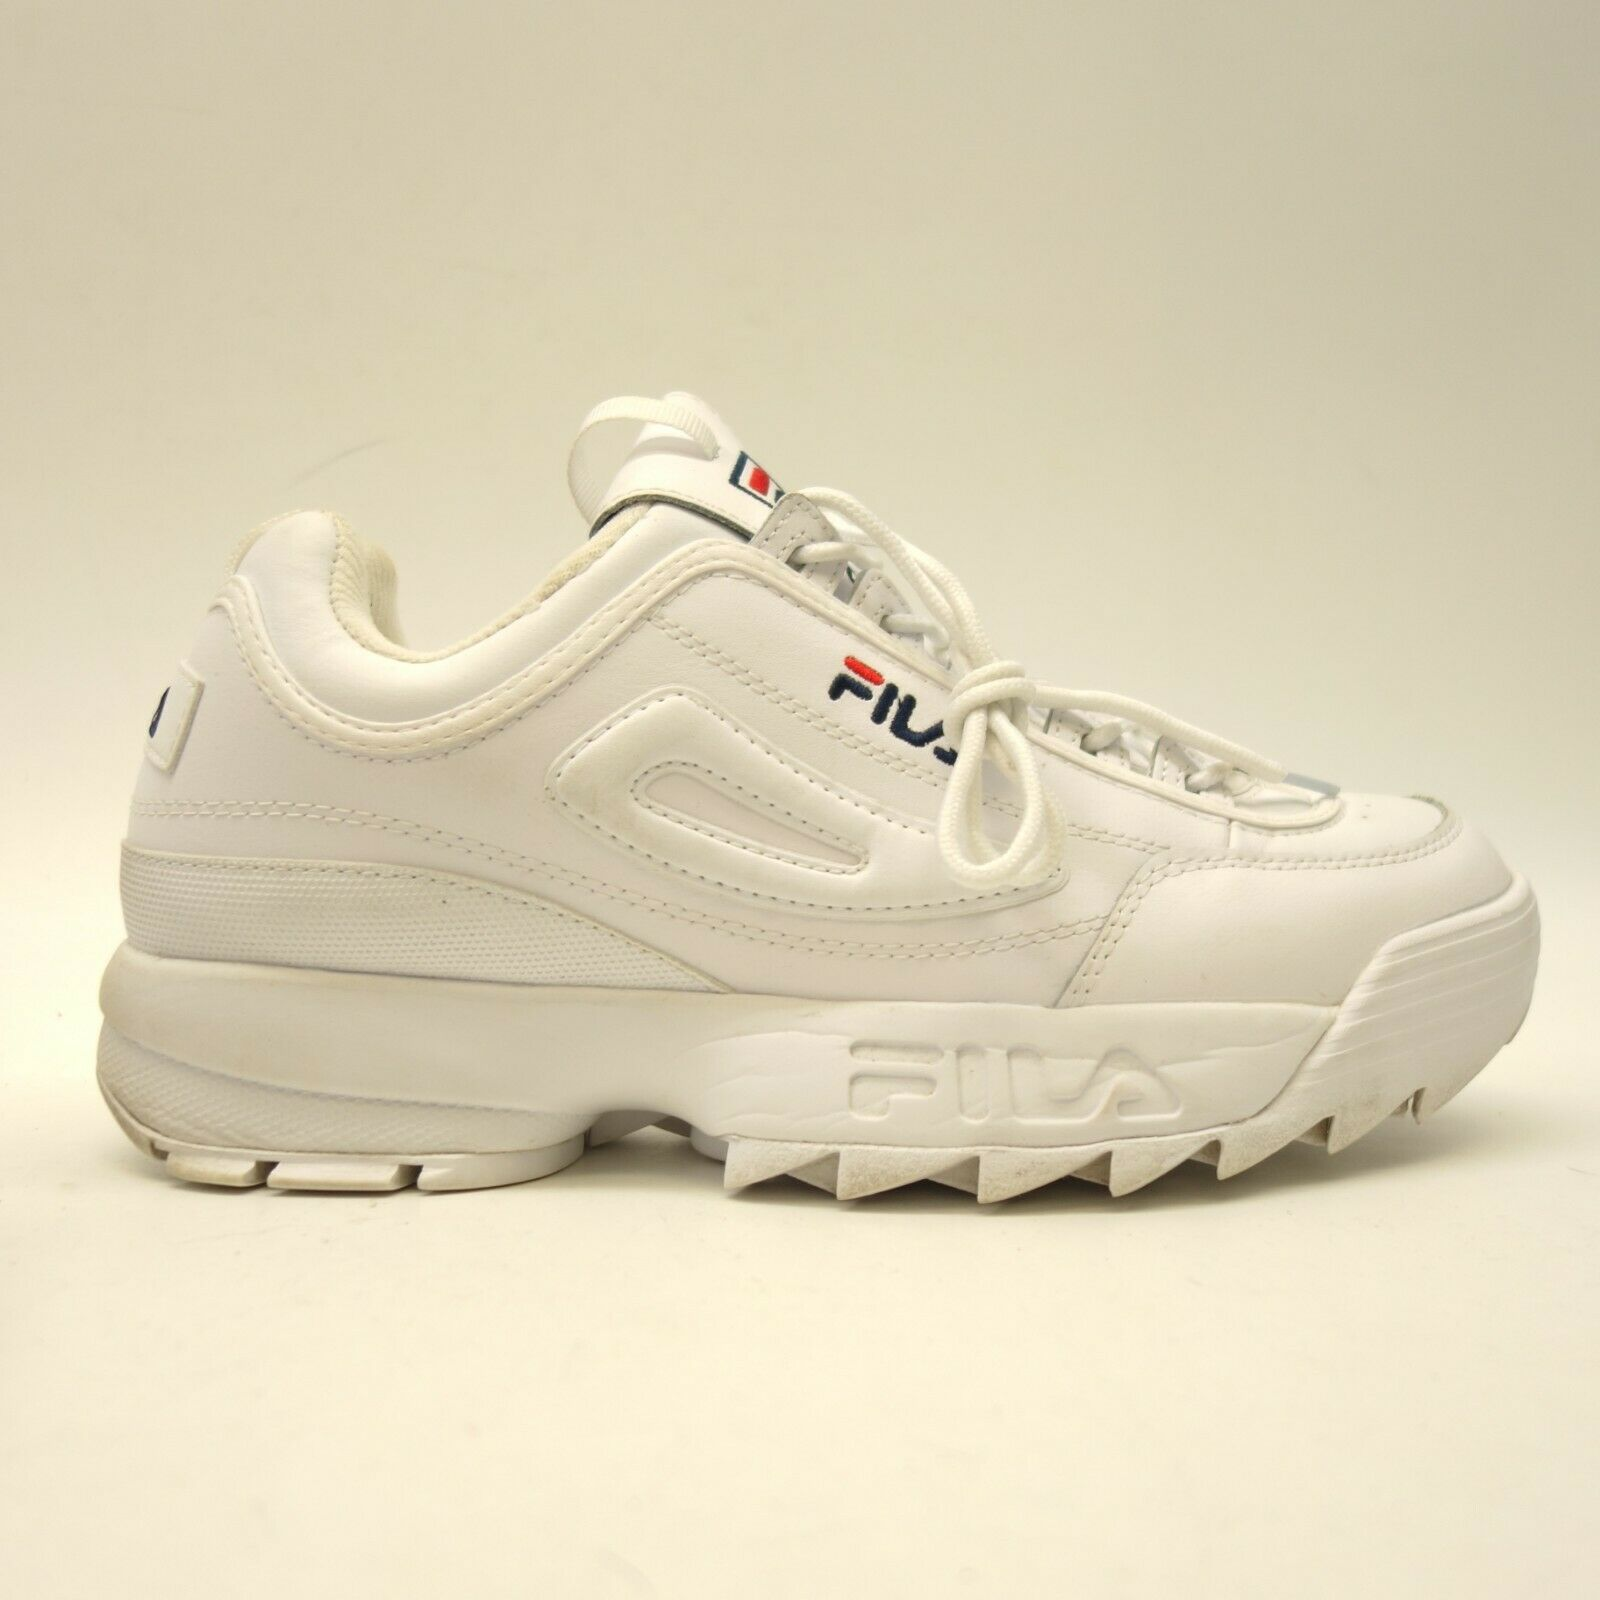 FILA Mens US 10 EU 43 Disruptor II Original White Premium shoes Sneakers